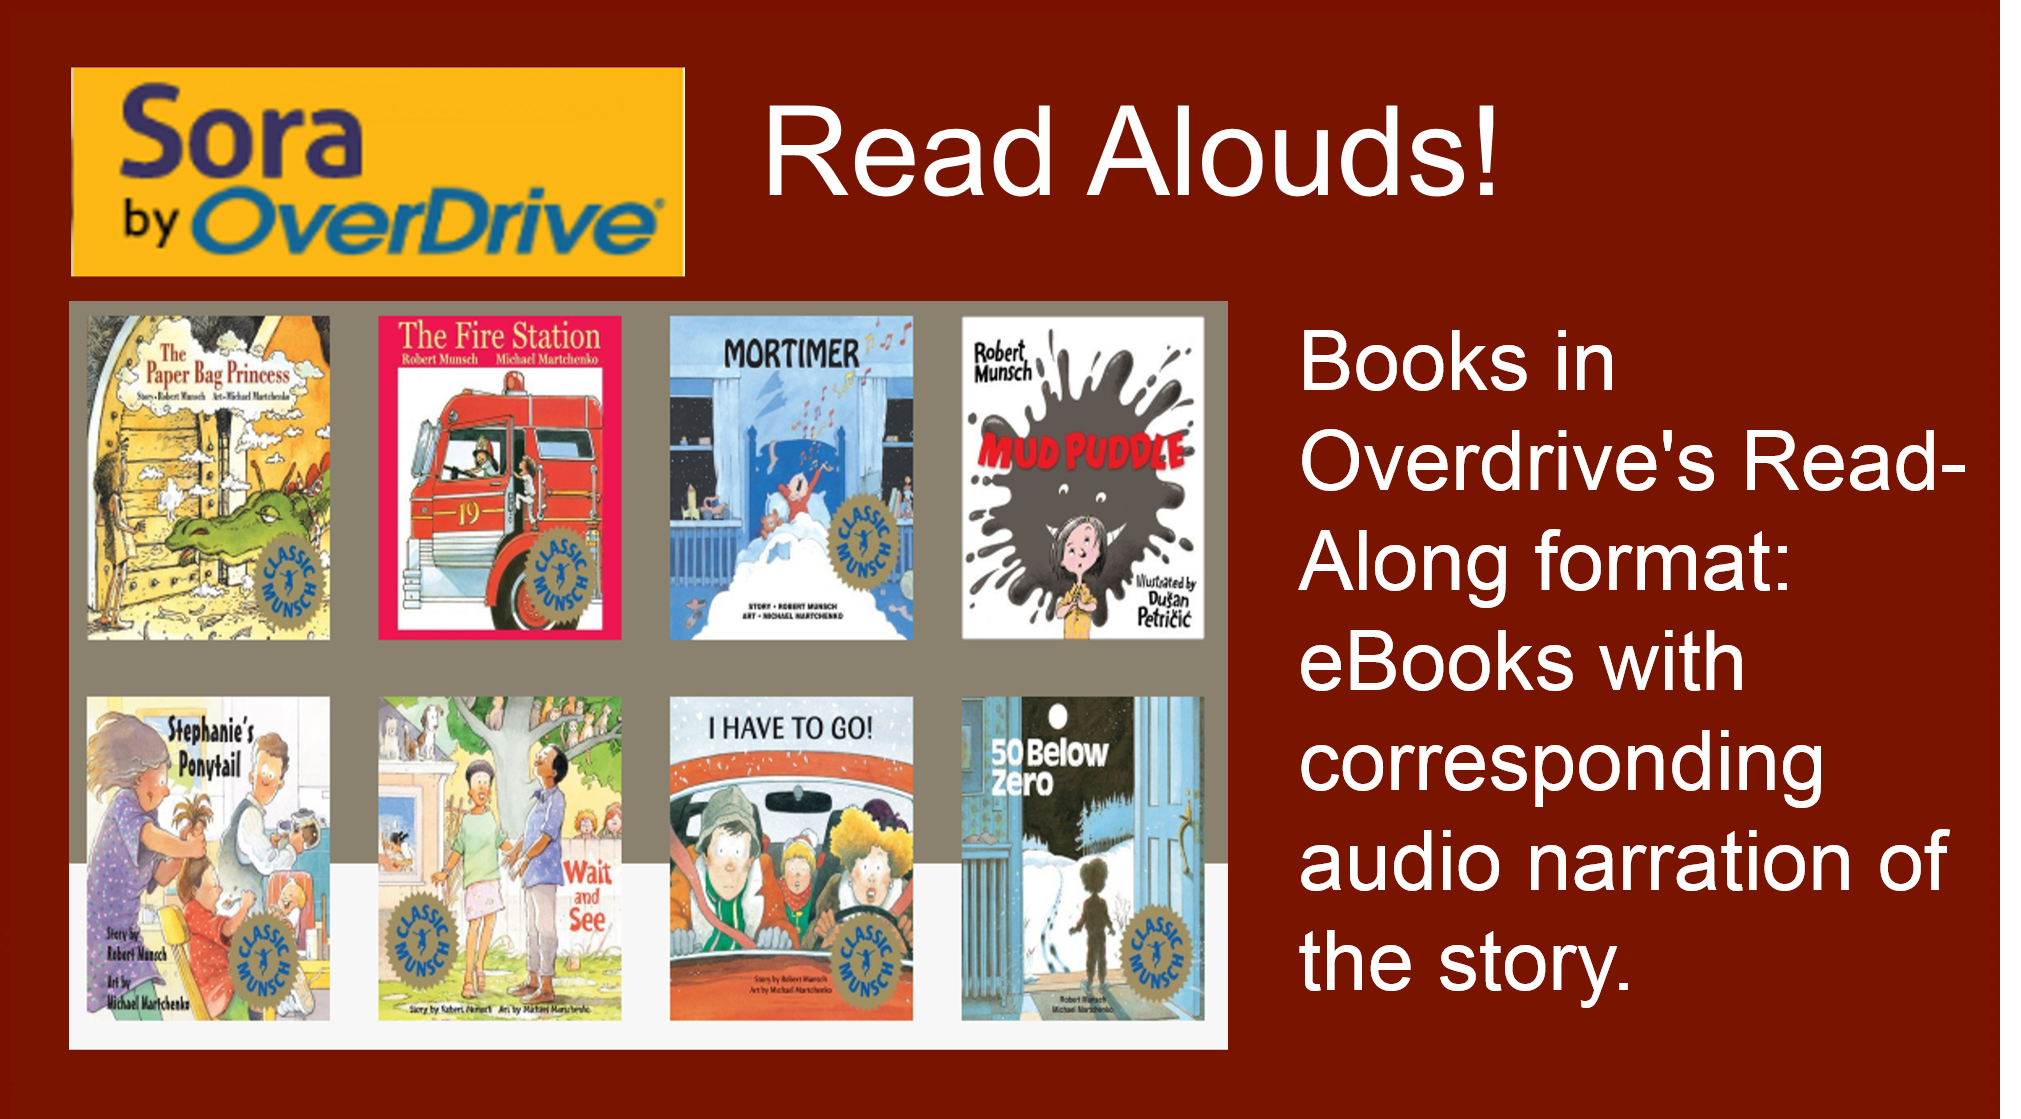 Books in Overdrive's Read-Along format: eBooks with corresponding audio narration of the story.